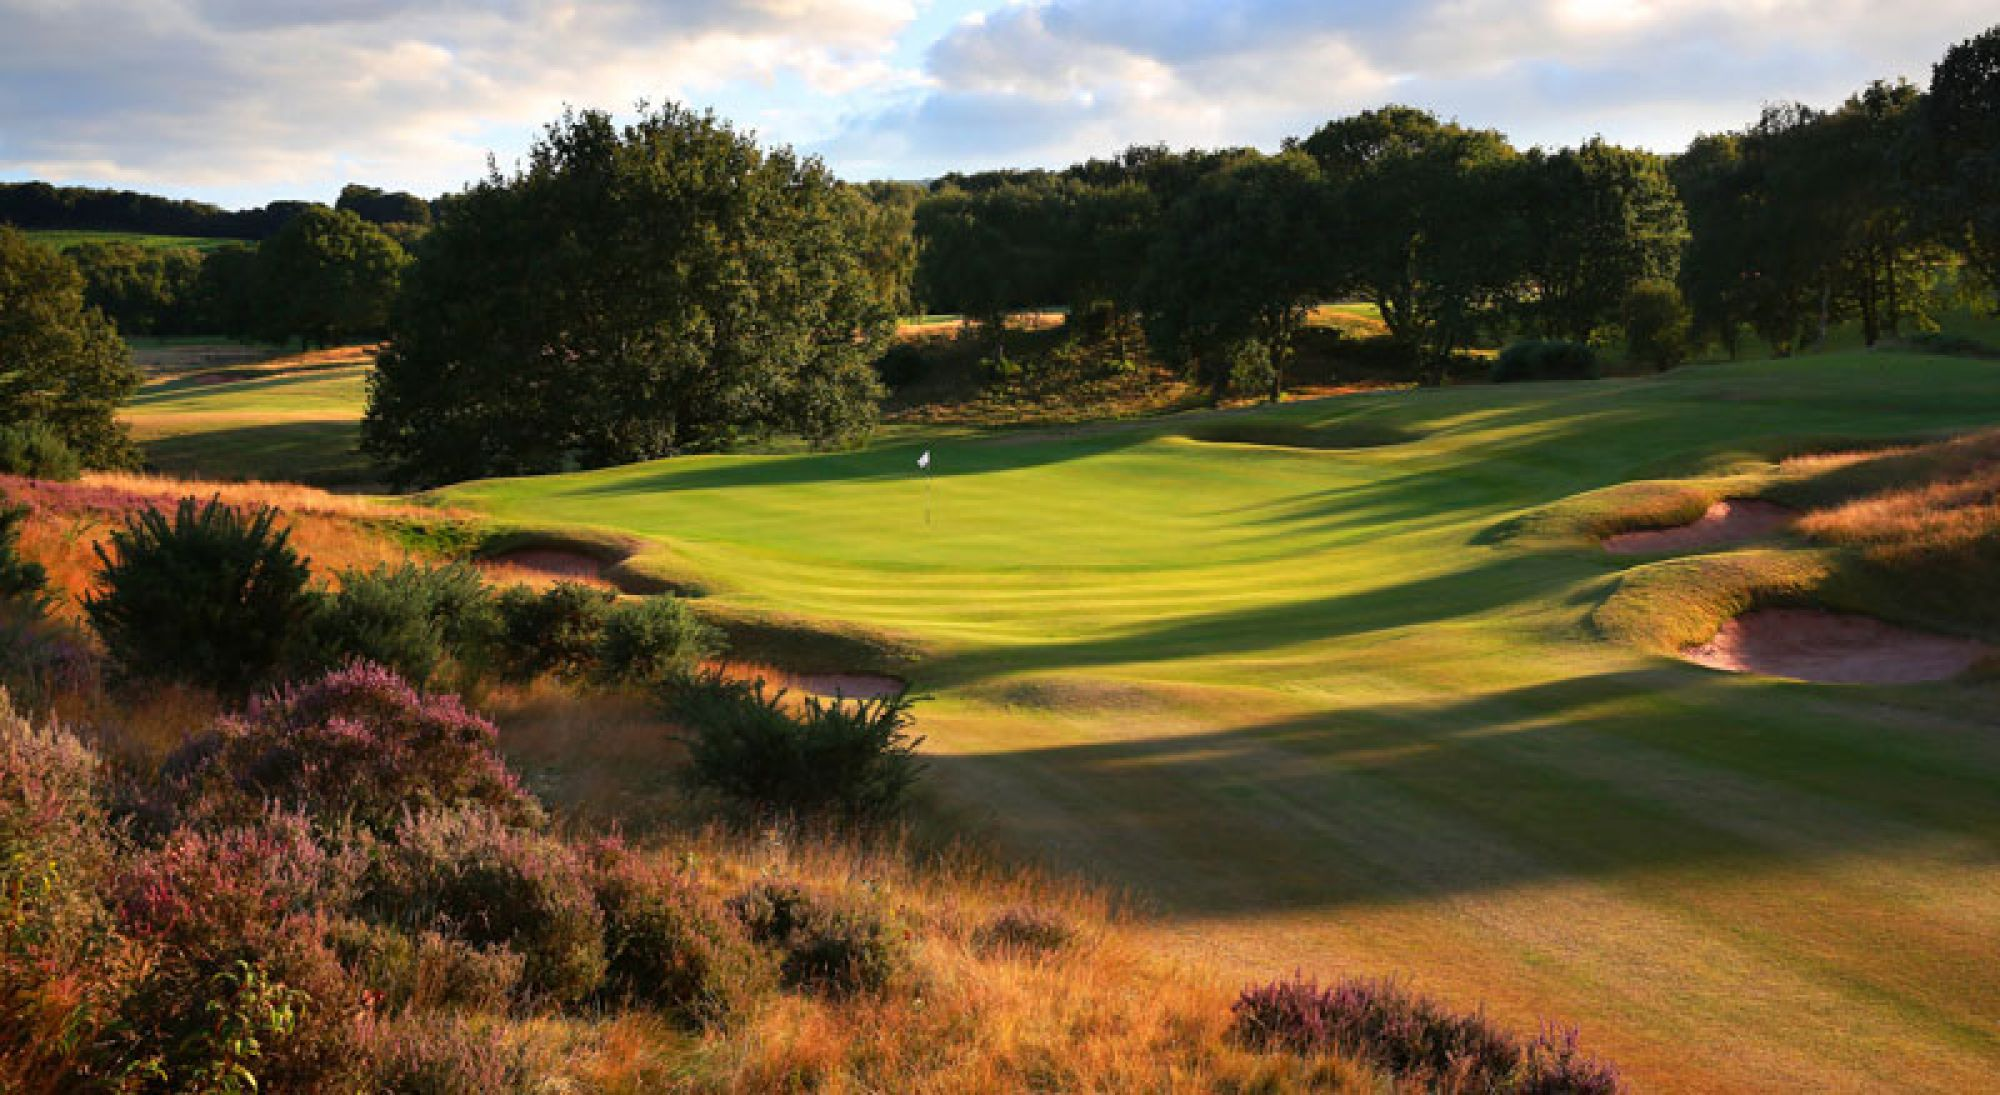 Notts Golf Club carries some of the most desirable golf course around Nottinghamshire